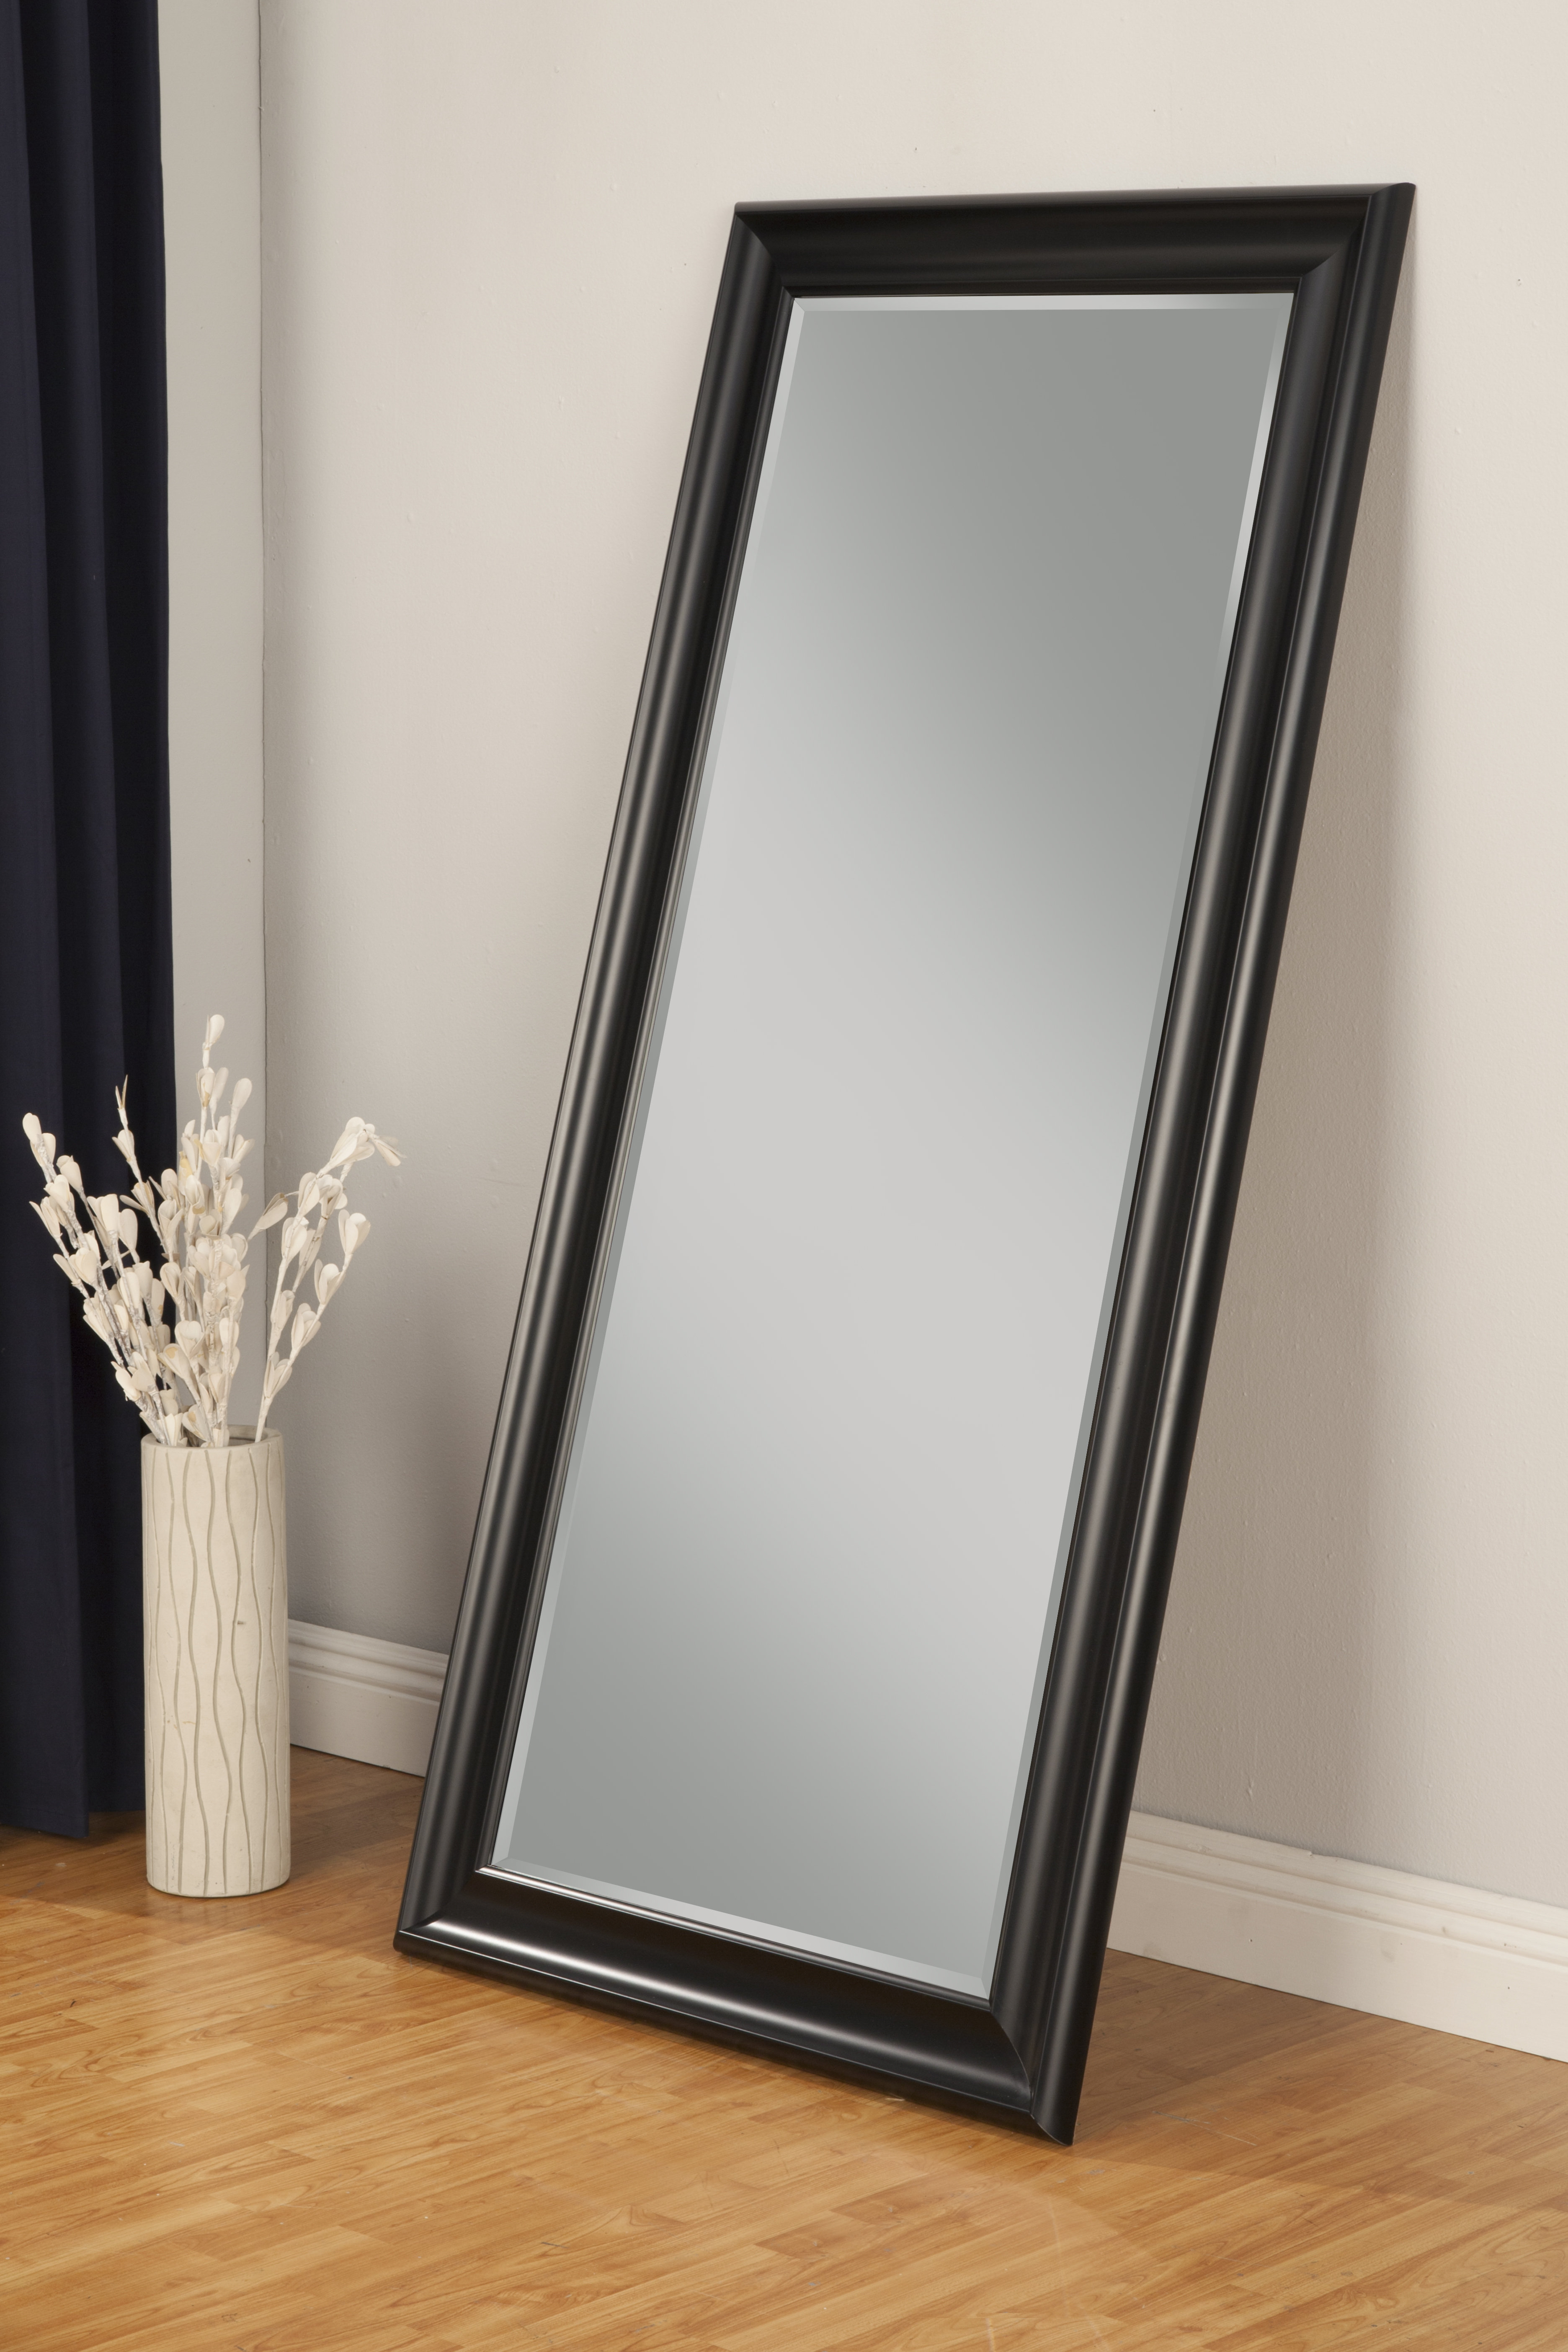 Northcutt Full Length Mirror Intended For Best And Newest Northcutt Accent Mirrors (Gallery 4 of 20)